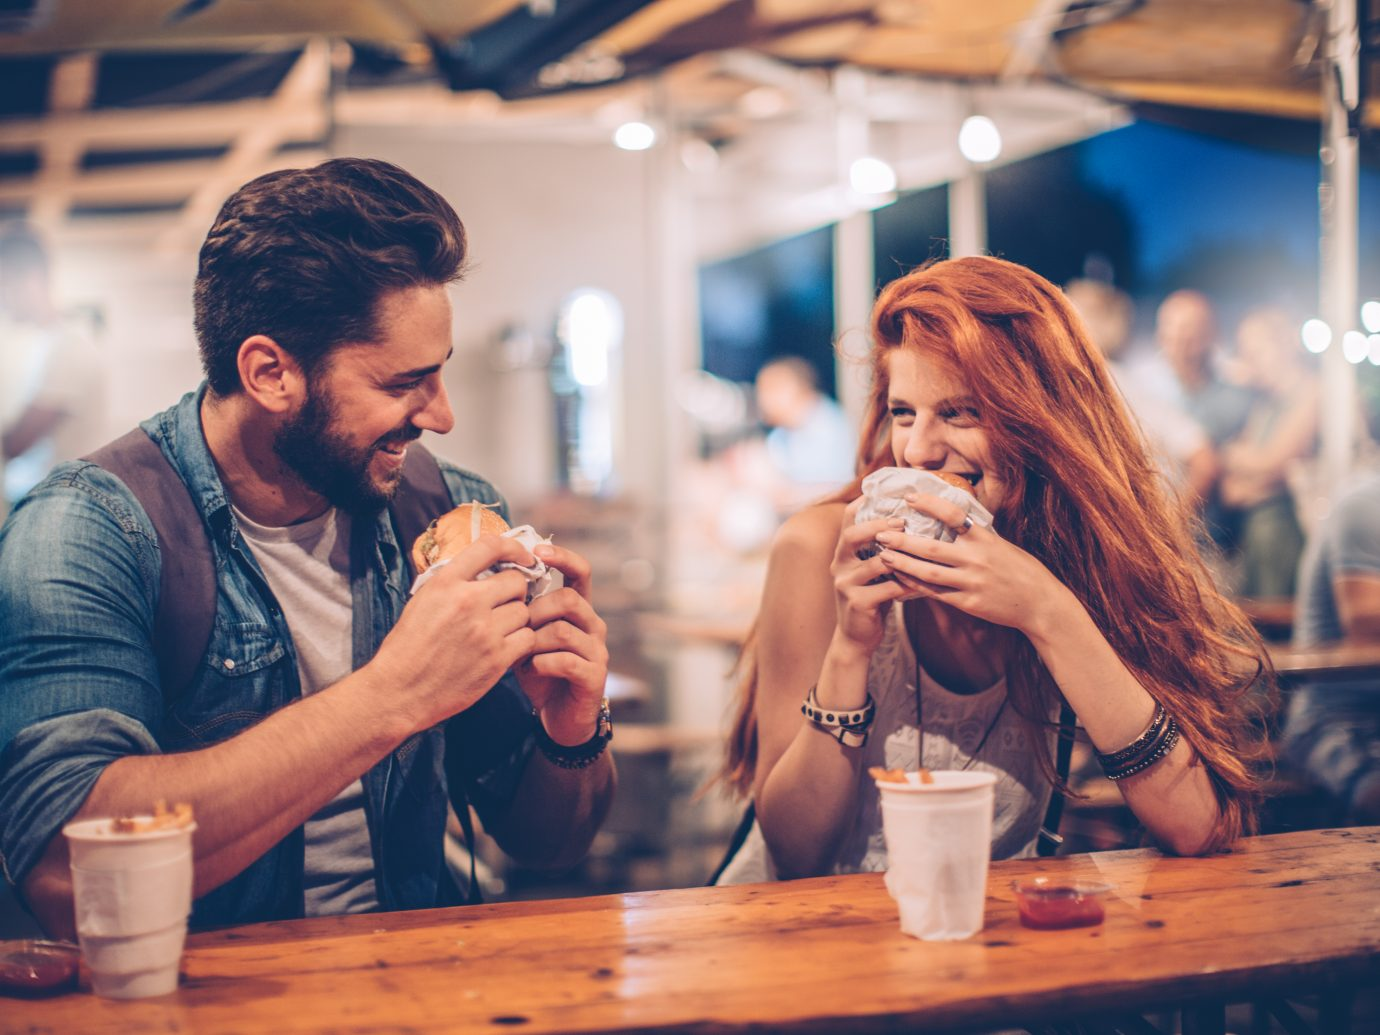 A young couple having snack and drink at an outdoors music festival. Eating burgers with fries and drinking beer.